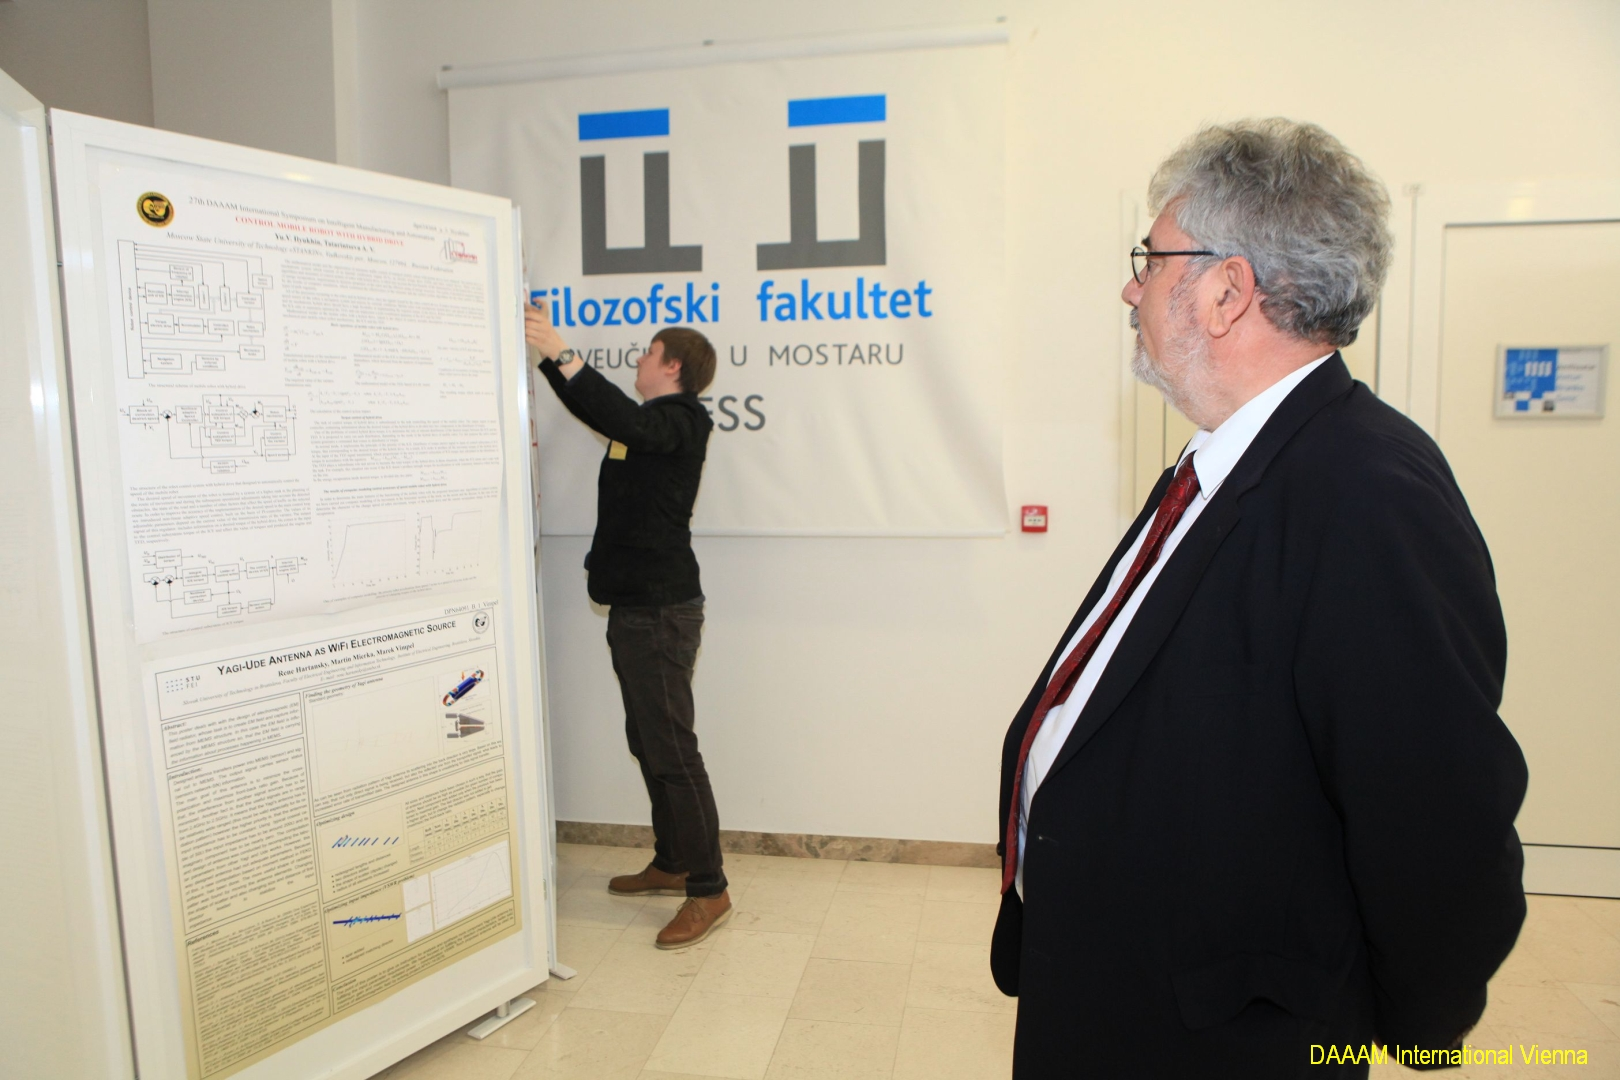 DAAAM_2016_Mostar_07_Posters_and_Presentations_Sessions_041